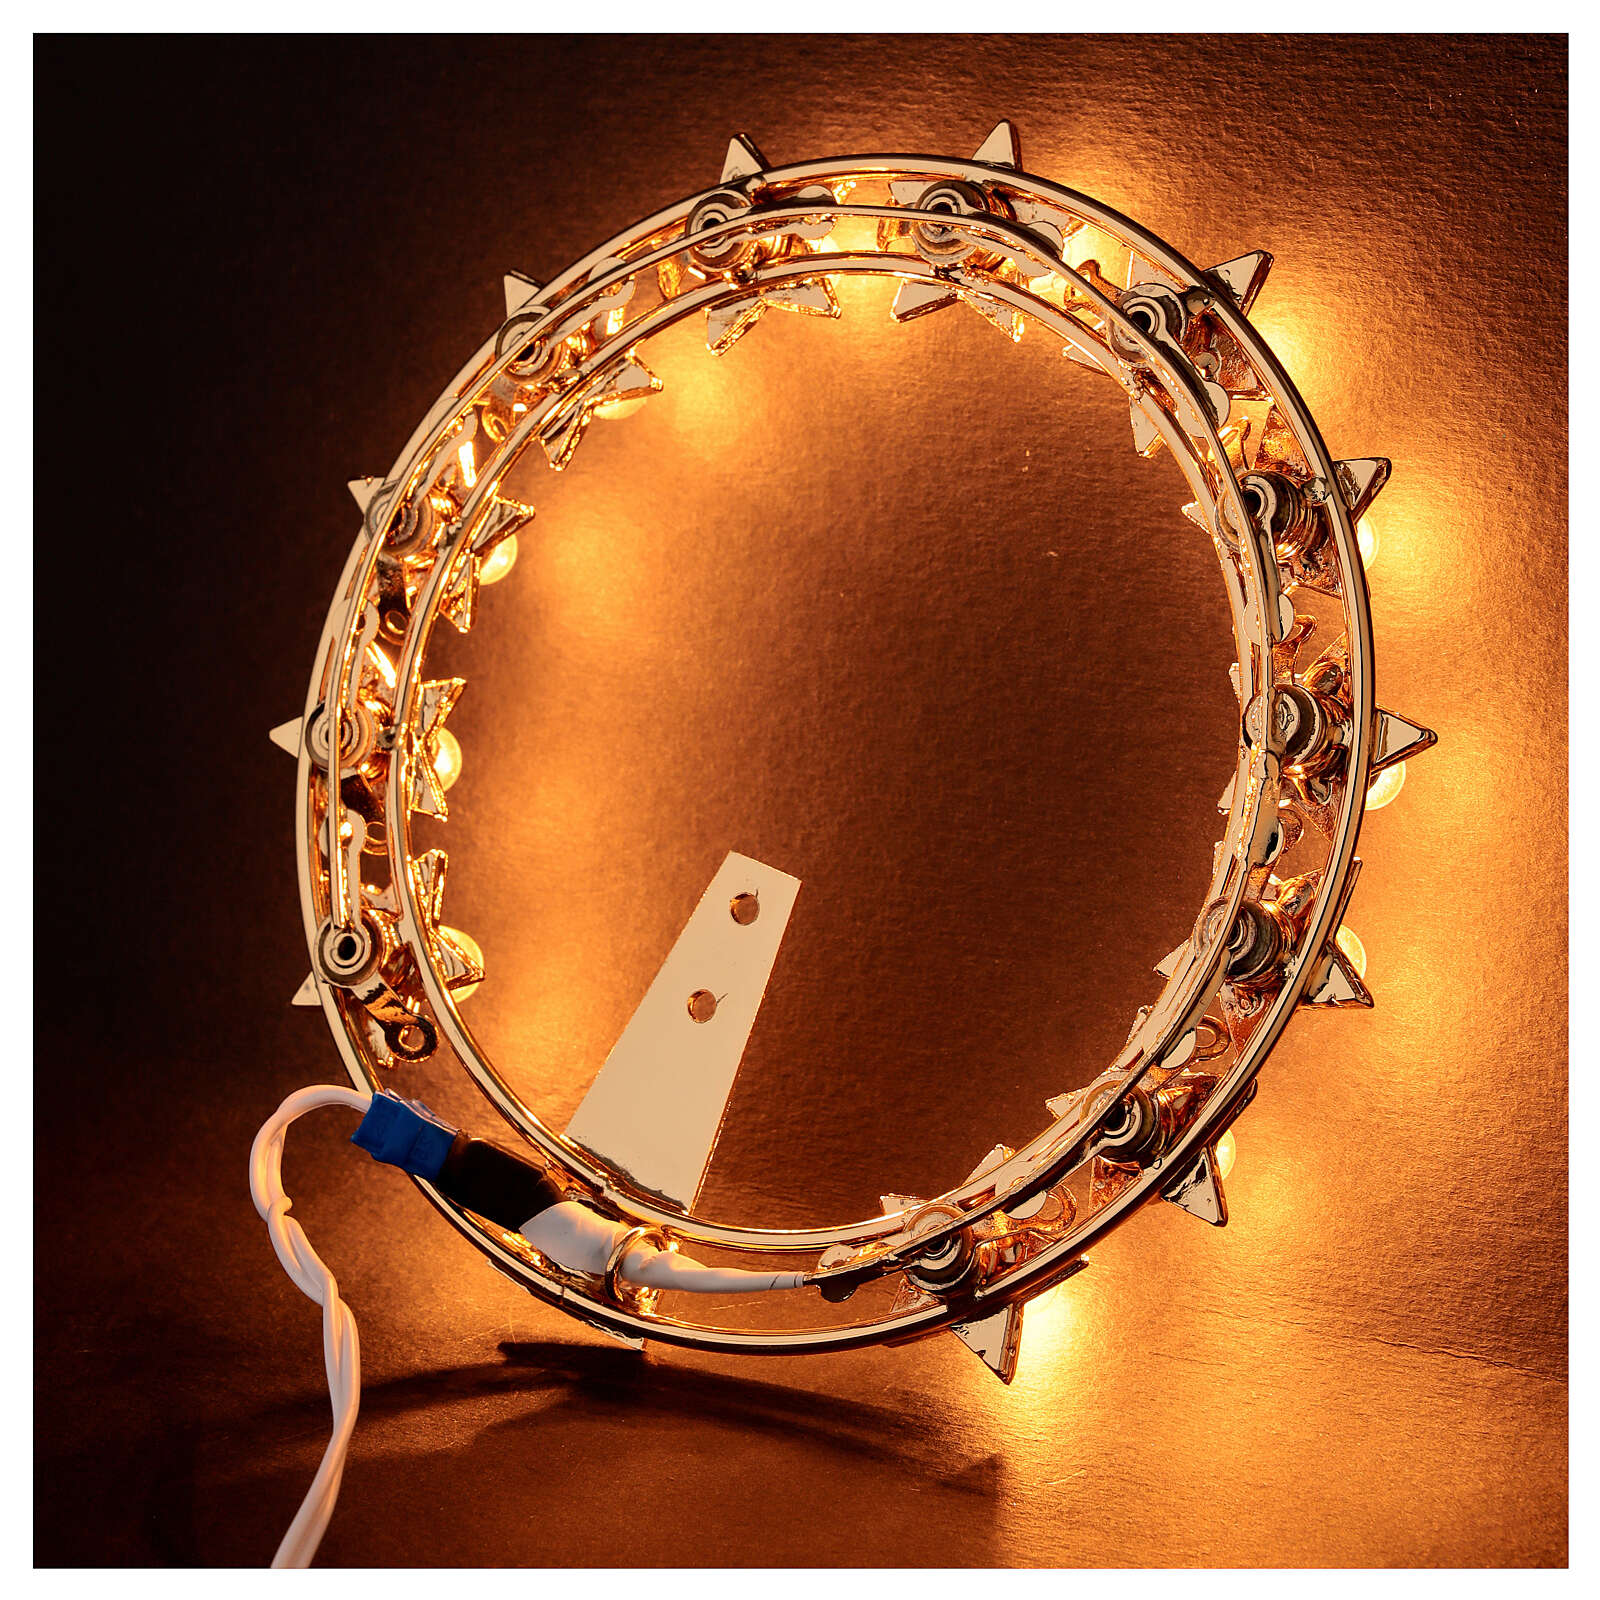 Lighted Star Halo with Bulbs in Golden Brass 3